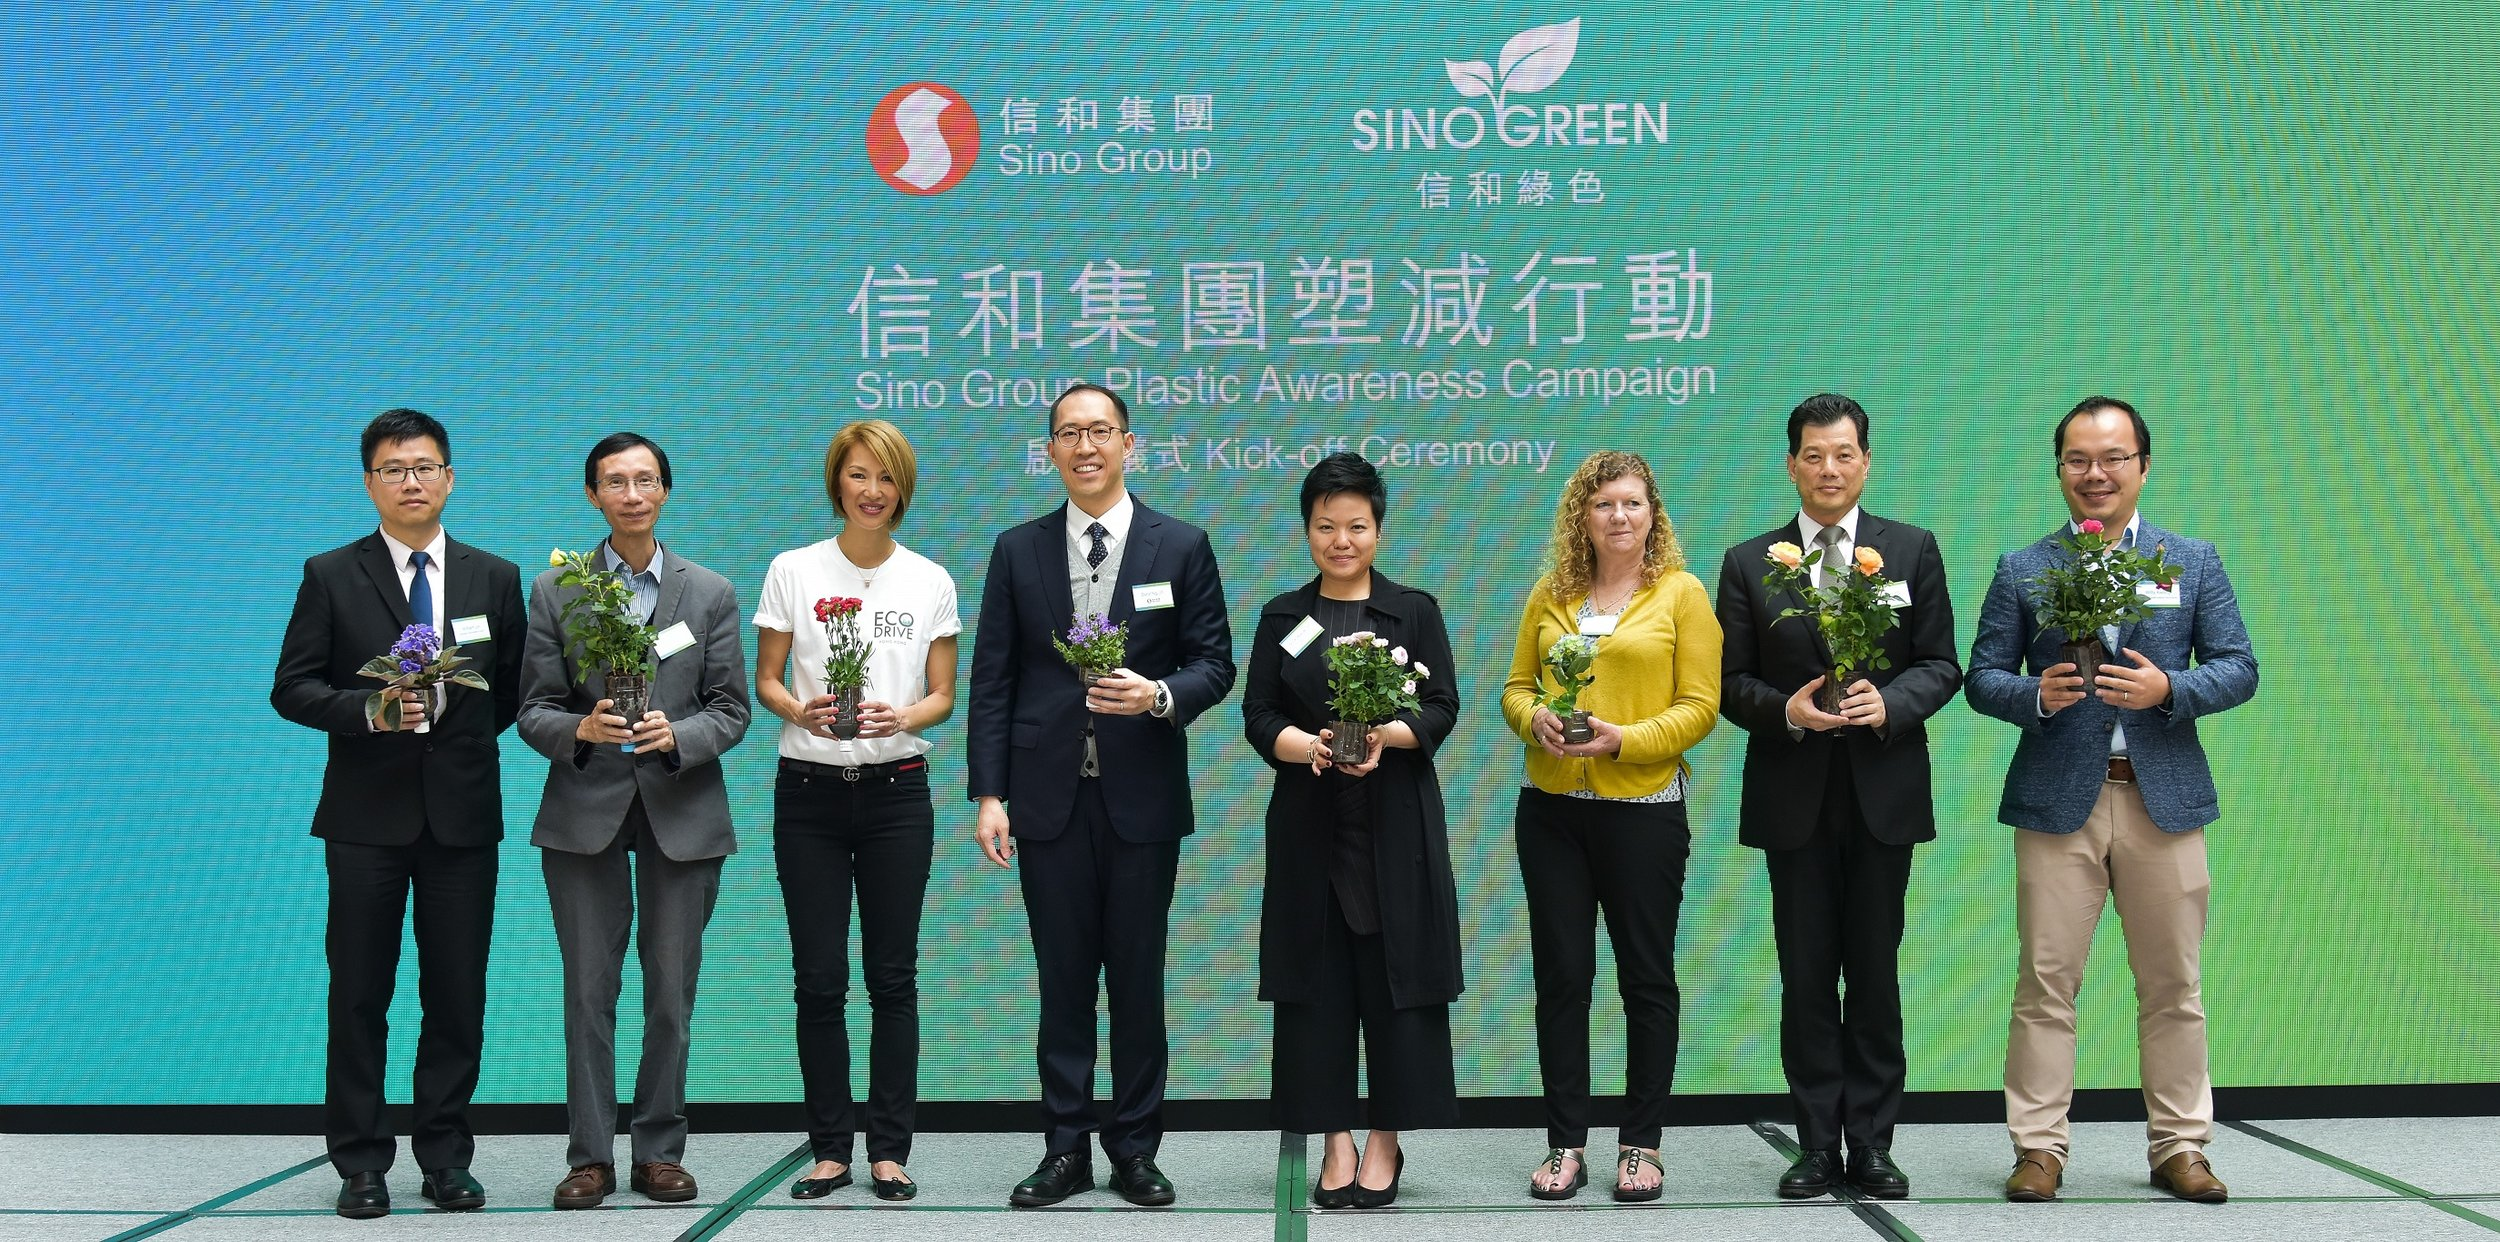 Sino Group Plastic Awareness Campaign - Kick-off Ceremony held on the 18 April 2018.